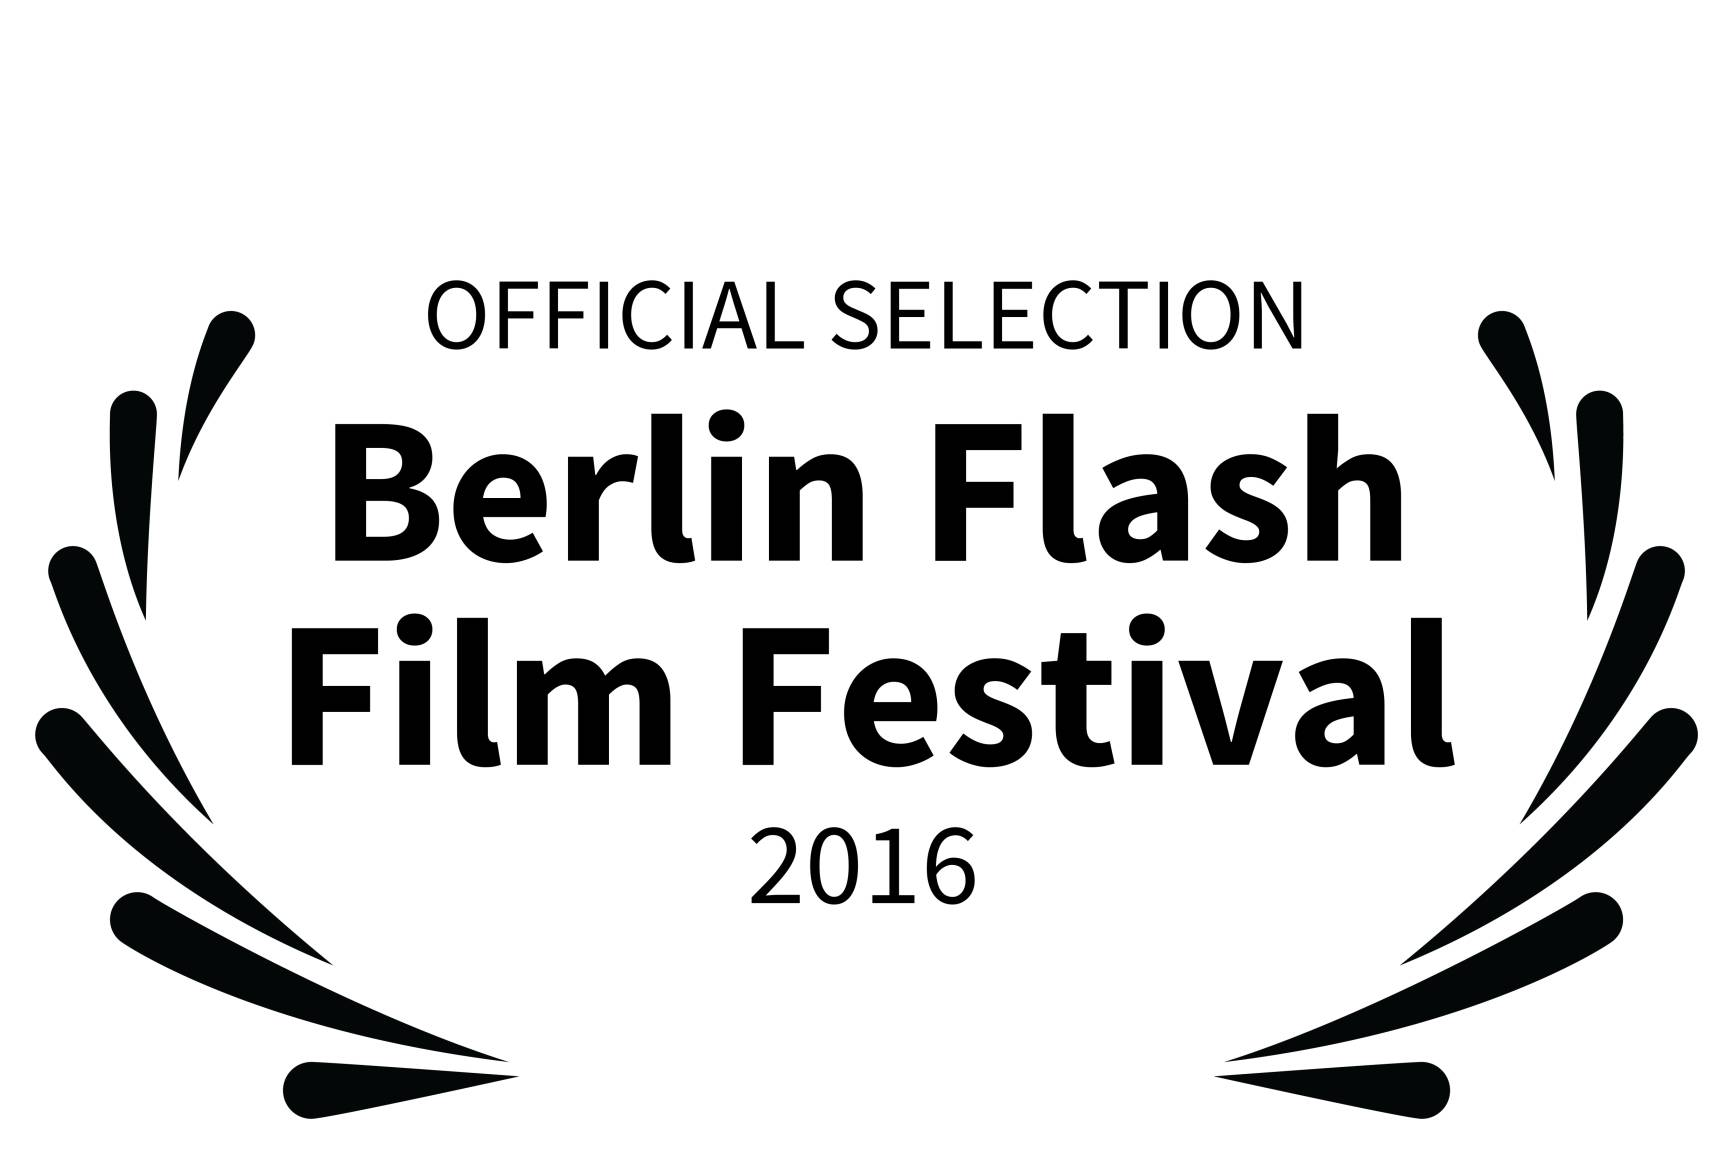 BERLIN FLASH